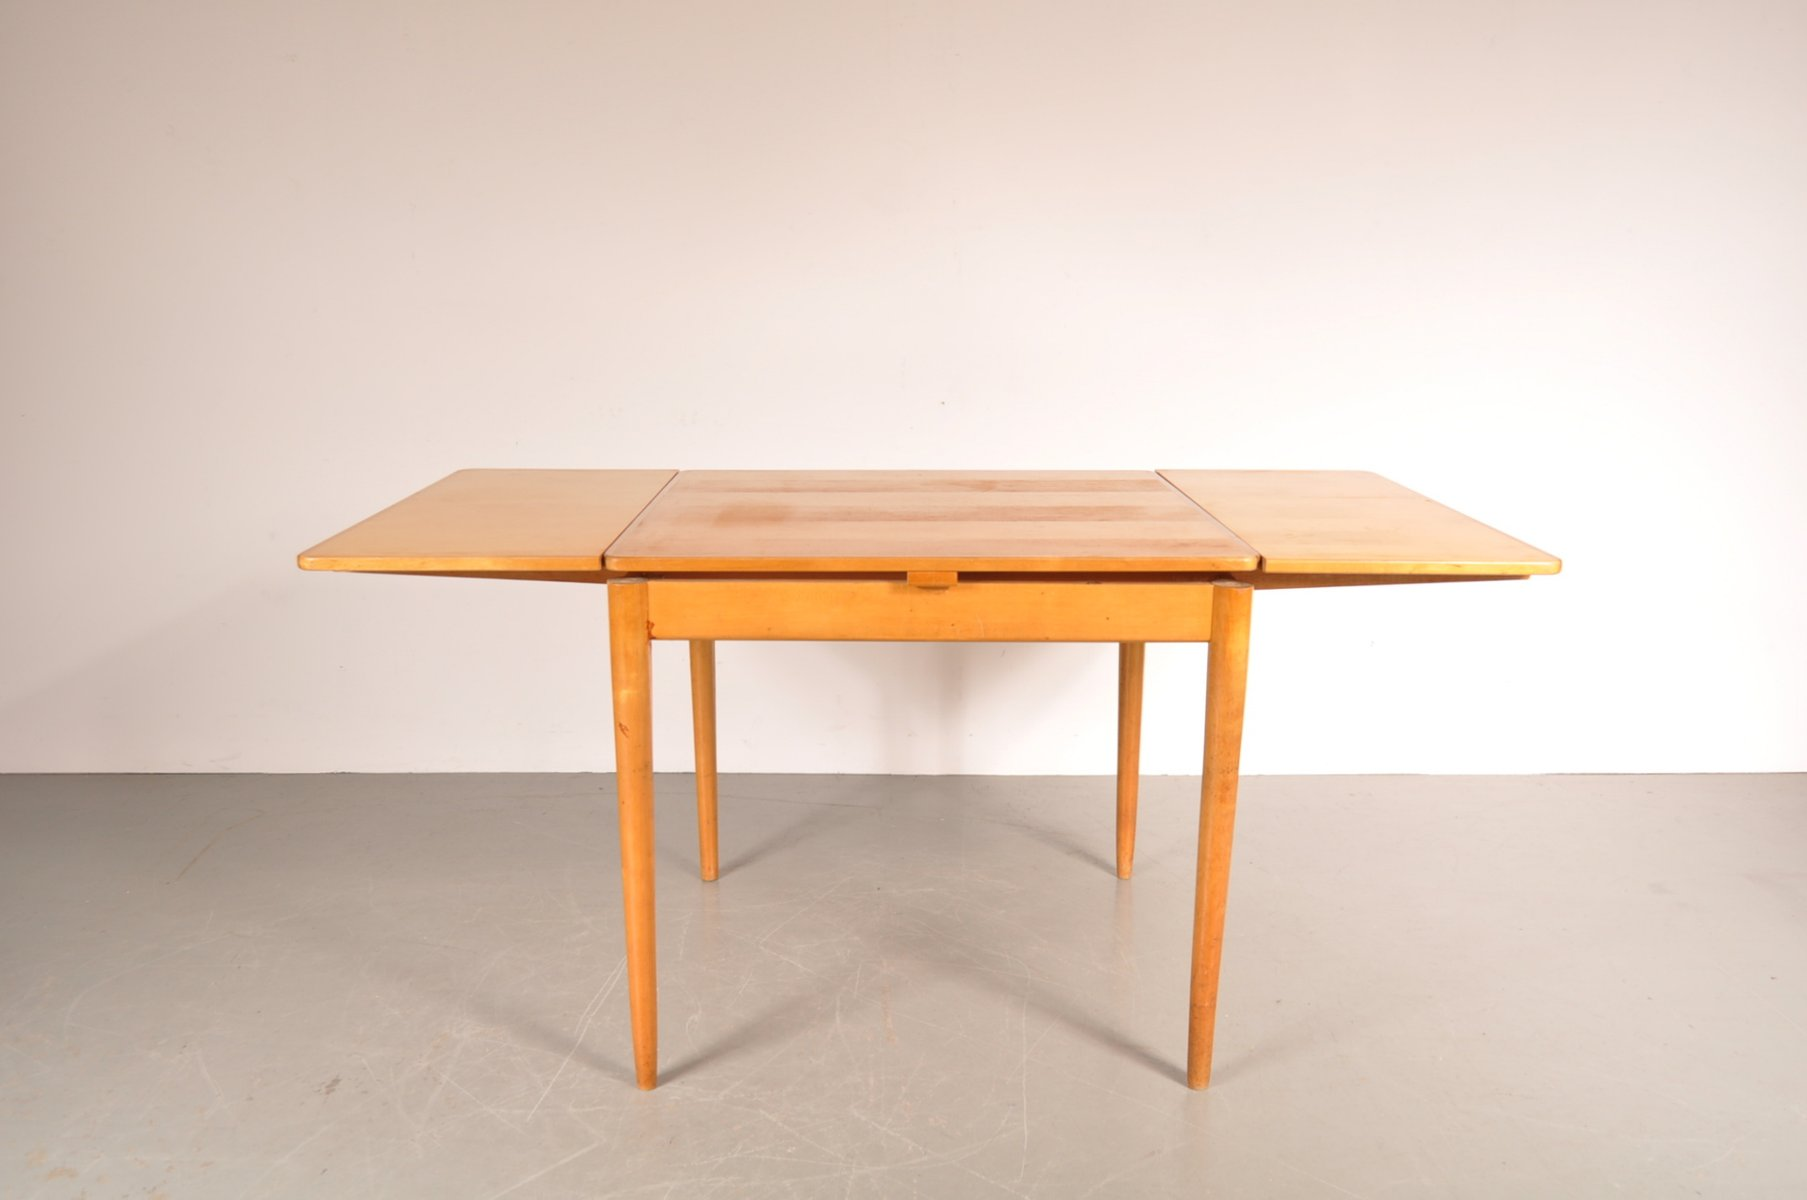 Table salle a manger carree extensible maison design for Table salle a manger carree but